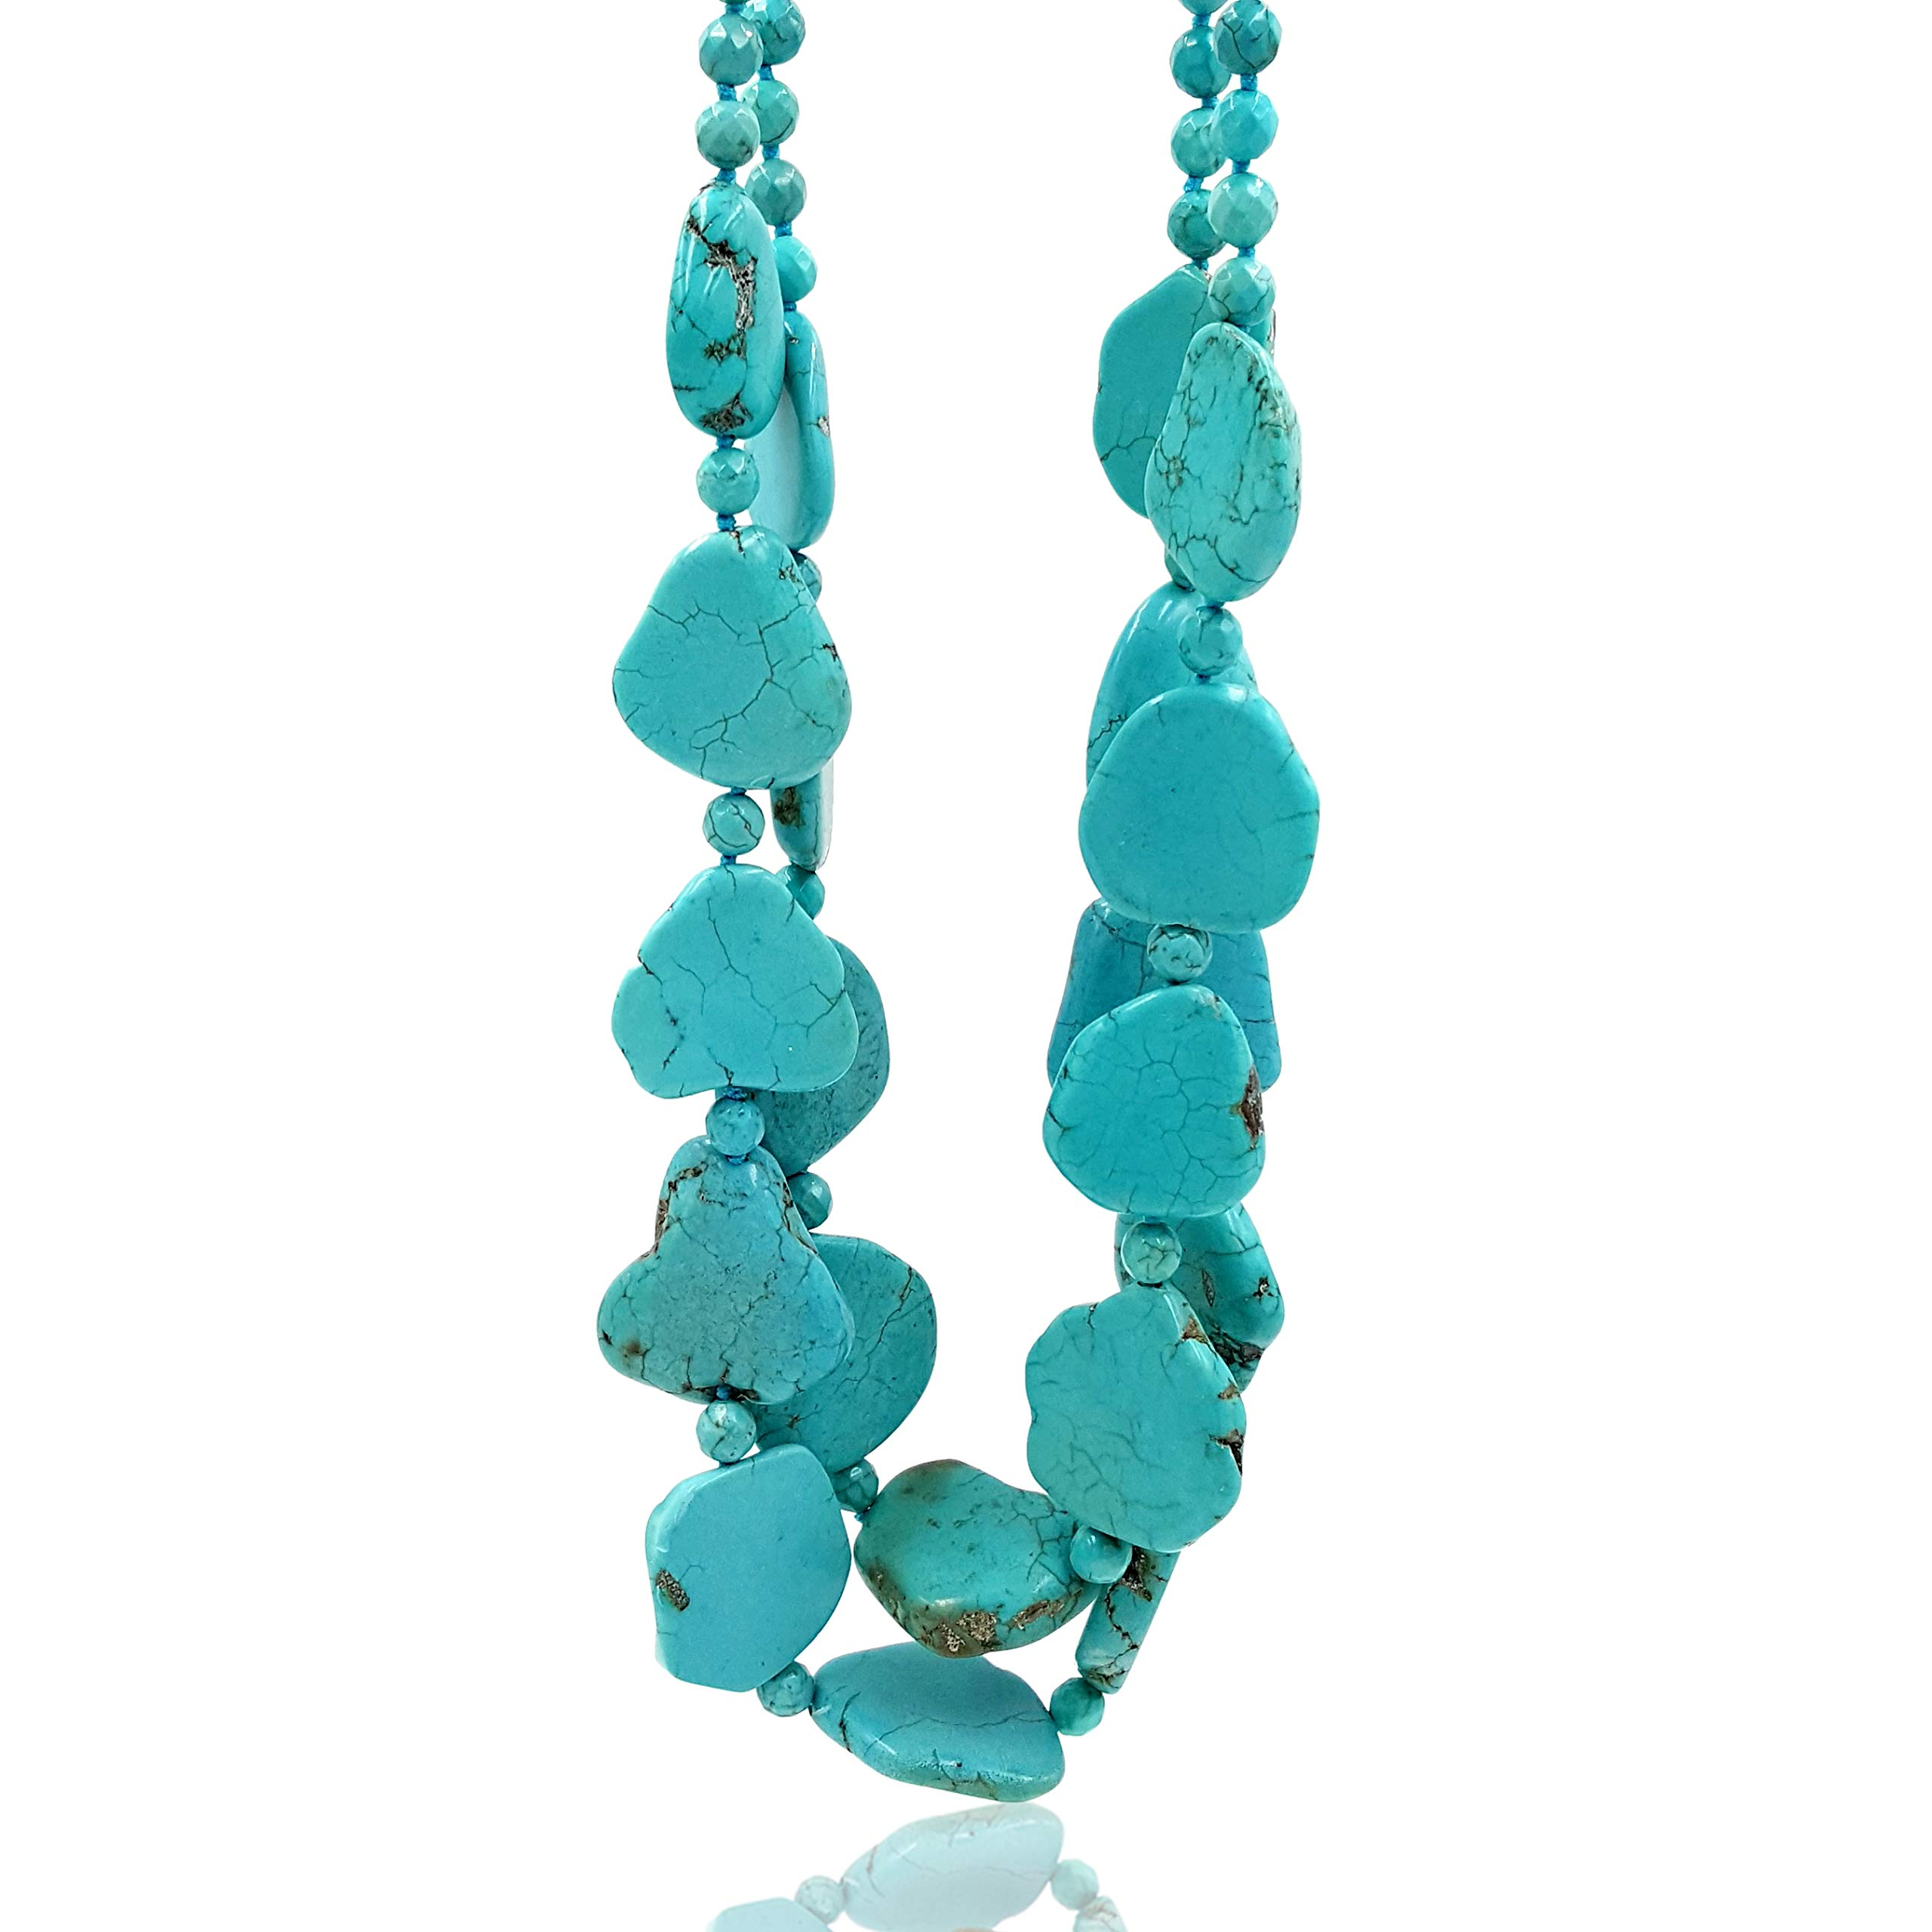 Lii Ji 26.5'' 2 Rows Irregular Shape Blue Simulated Turquoise Howlite Statement Long Necklace